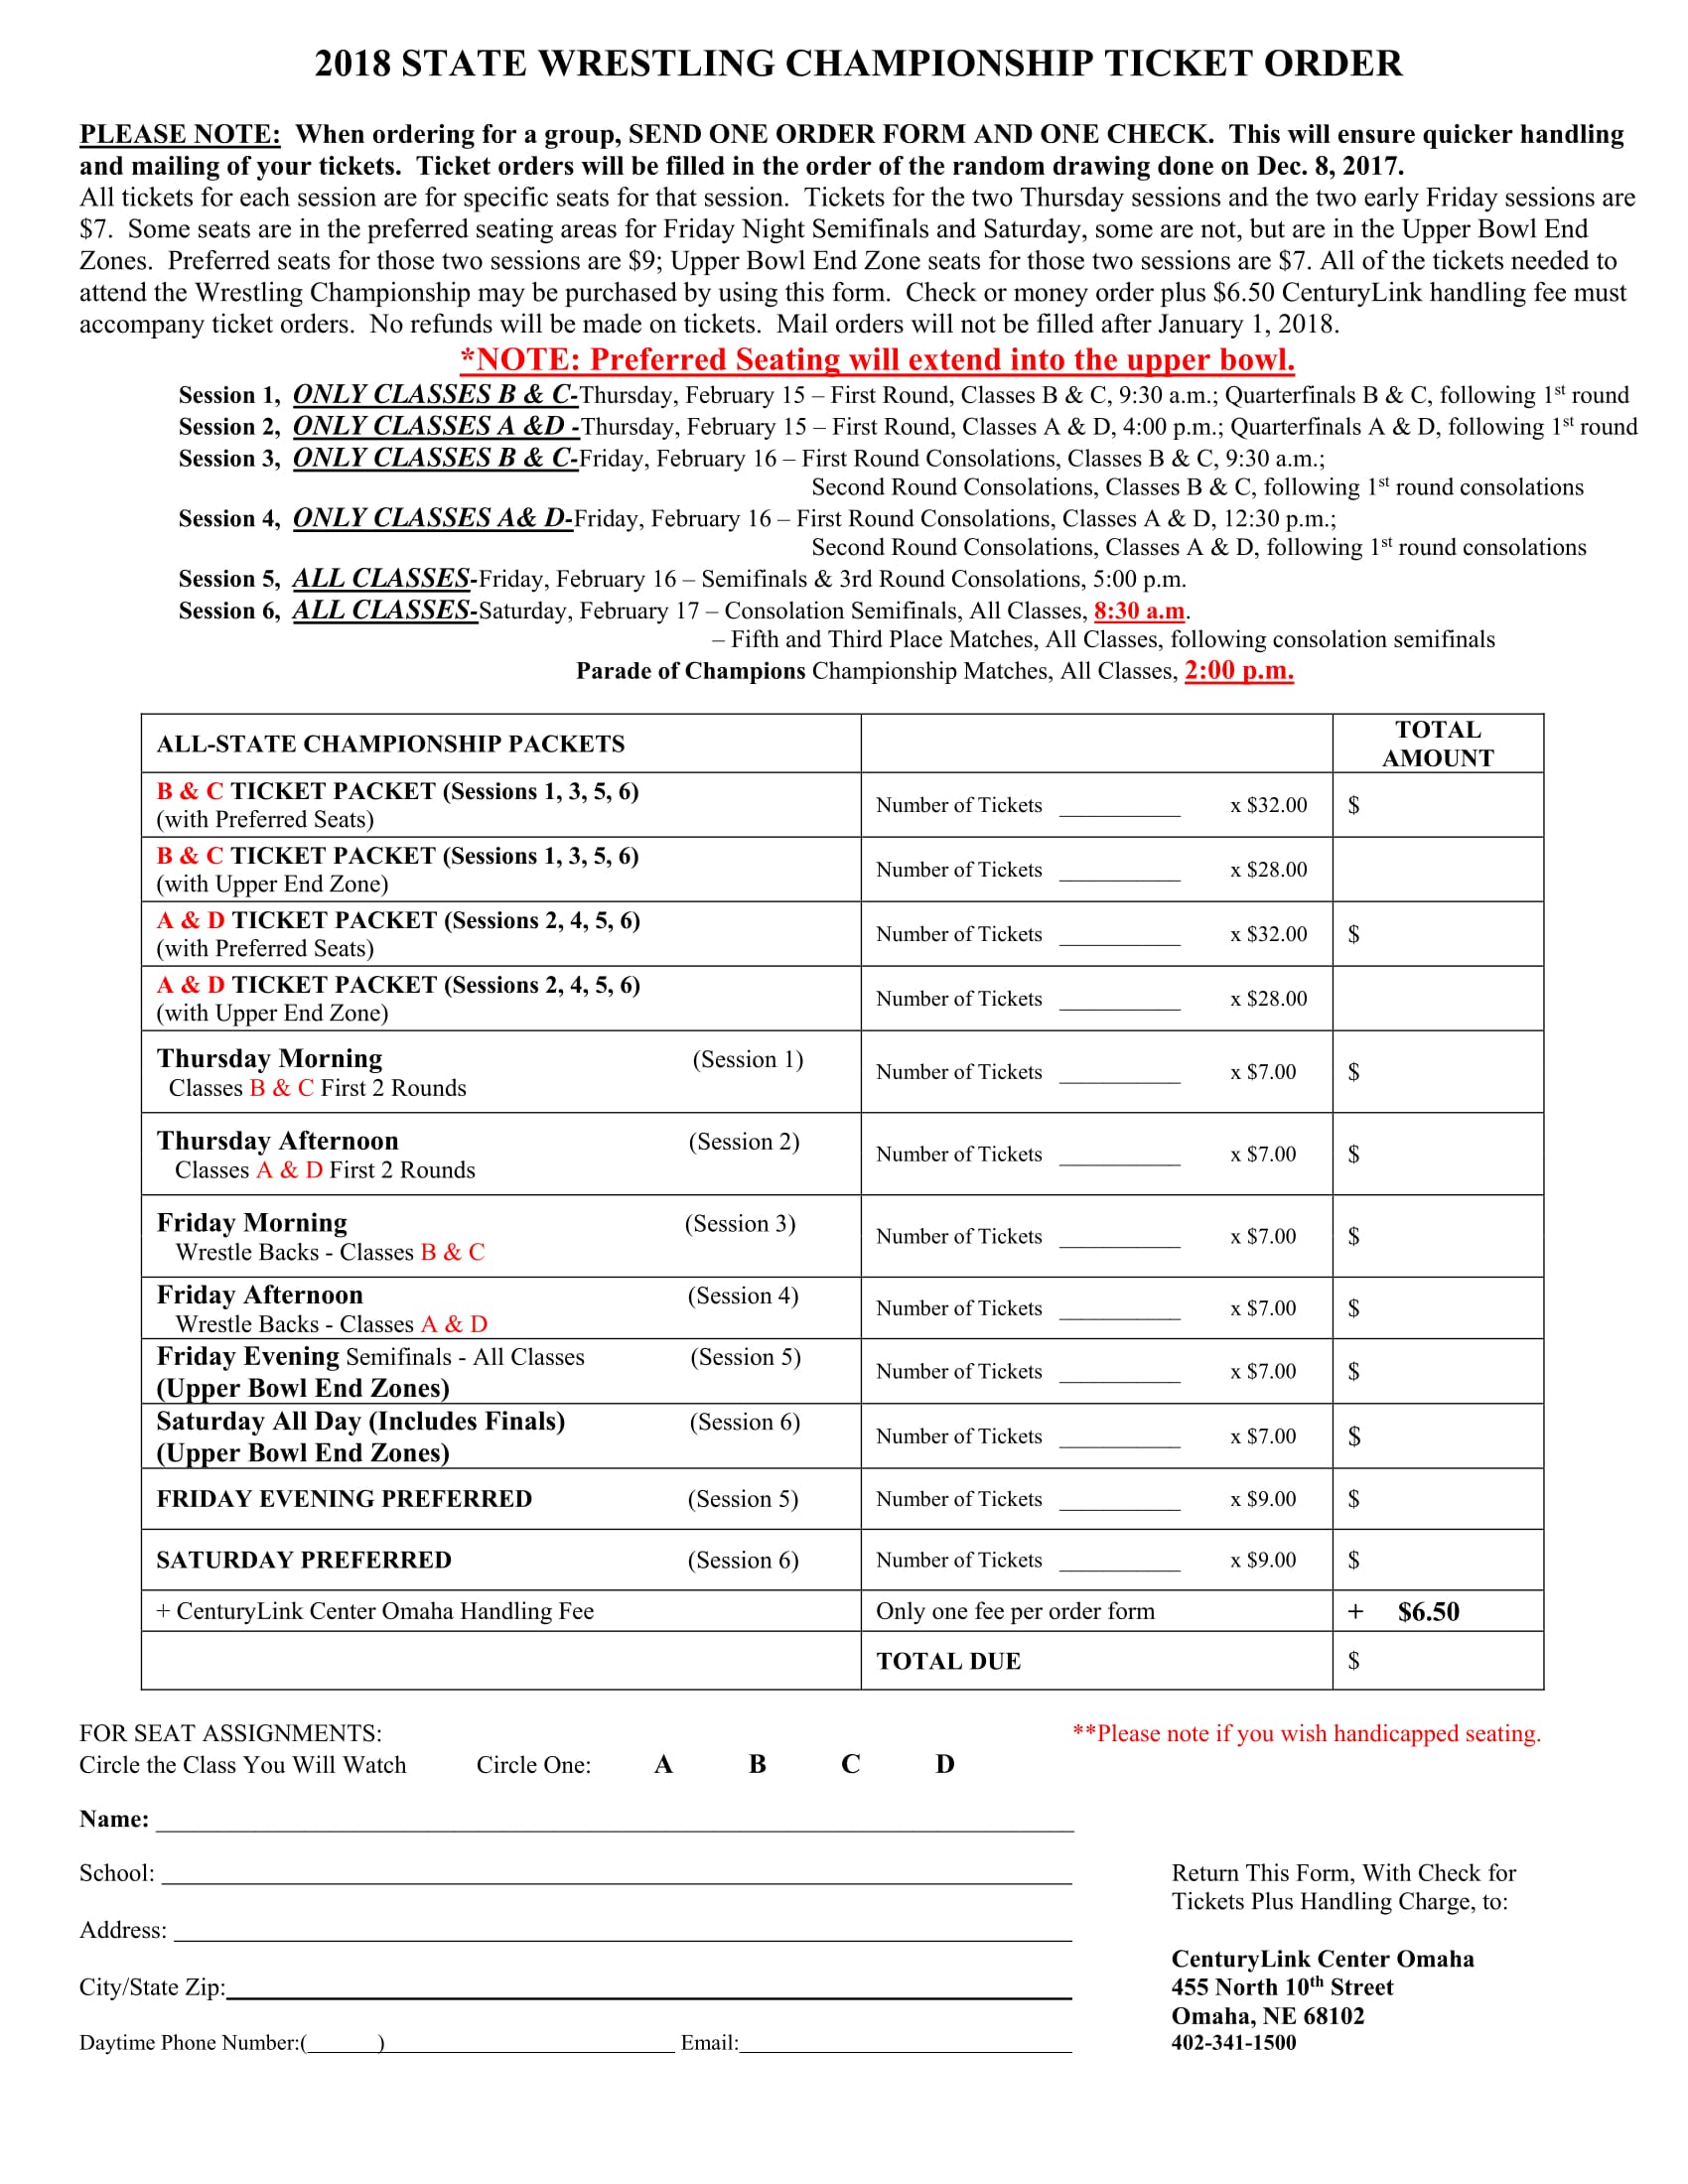 wrestling championship ticket order form 1